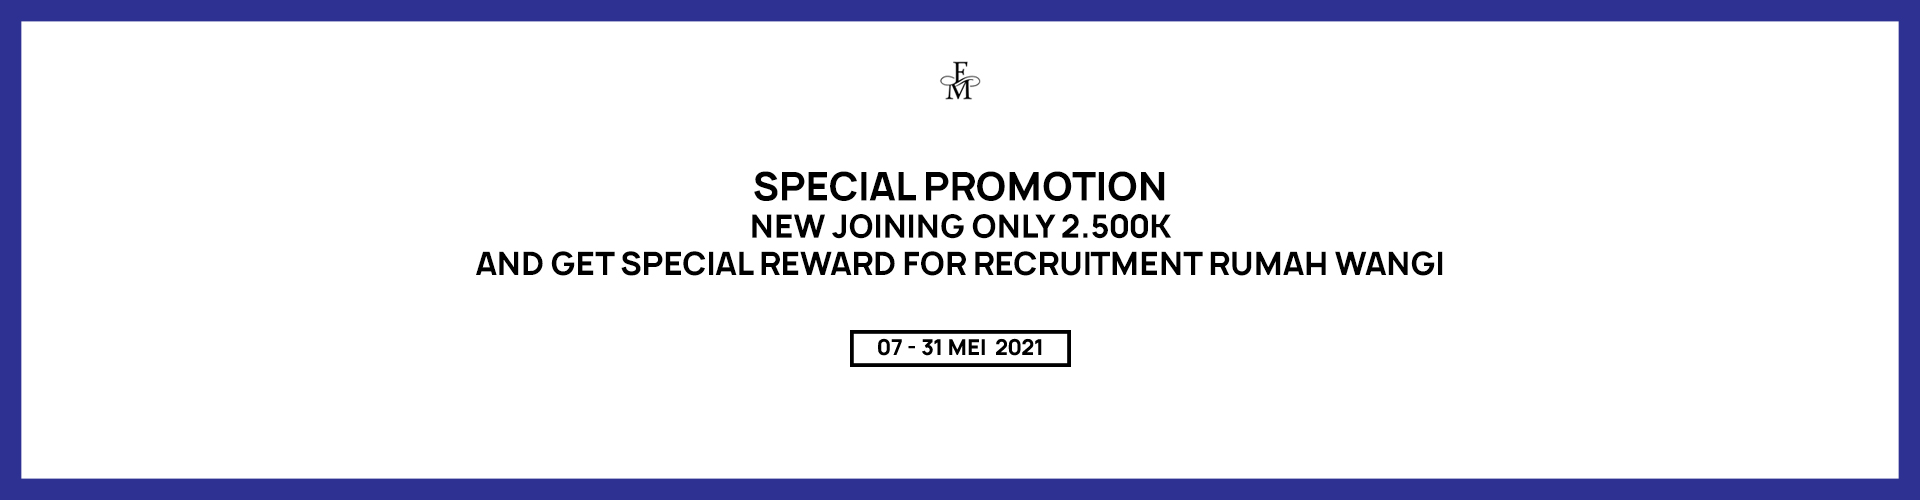 SPECIAL PROMOTION NEW JOINING ONLY 2.500K AND GET SPECIAL REWARD FOR RECRUITMENT RUMAH WANGI